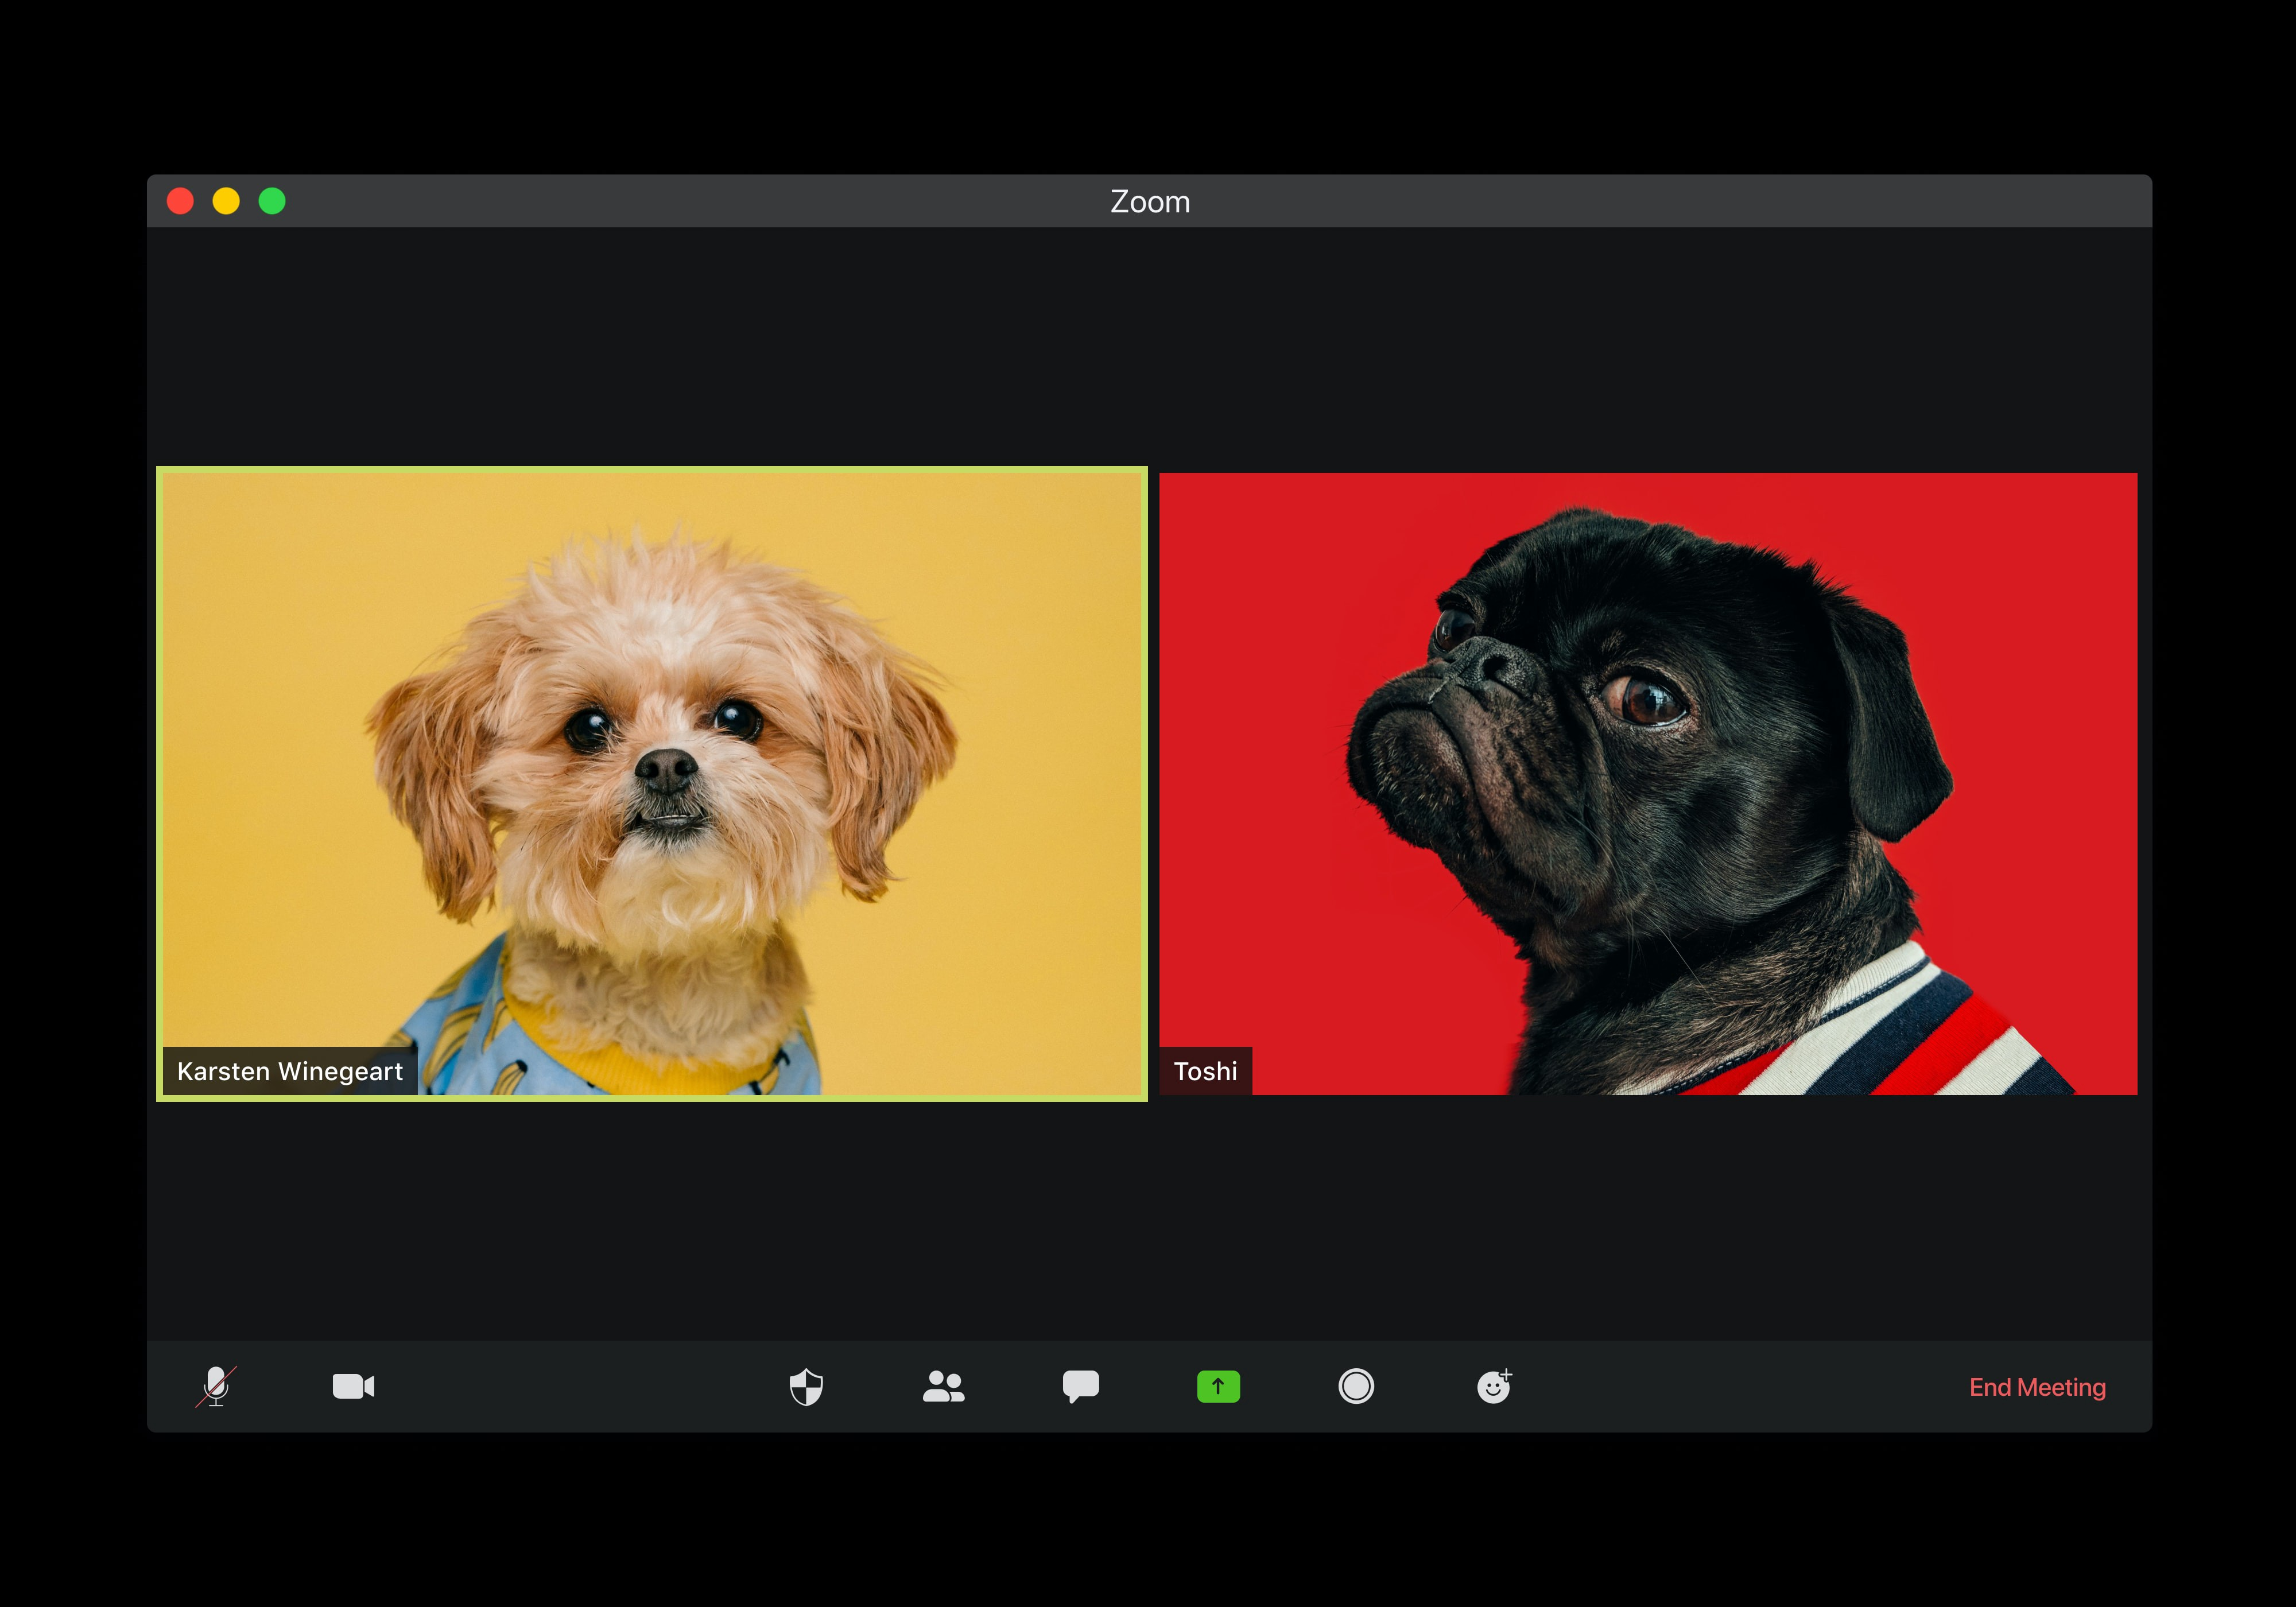 two dogs in a video conference